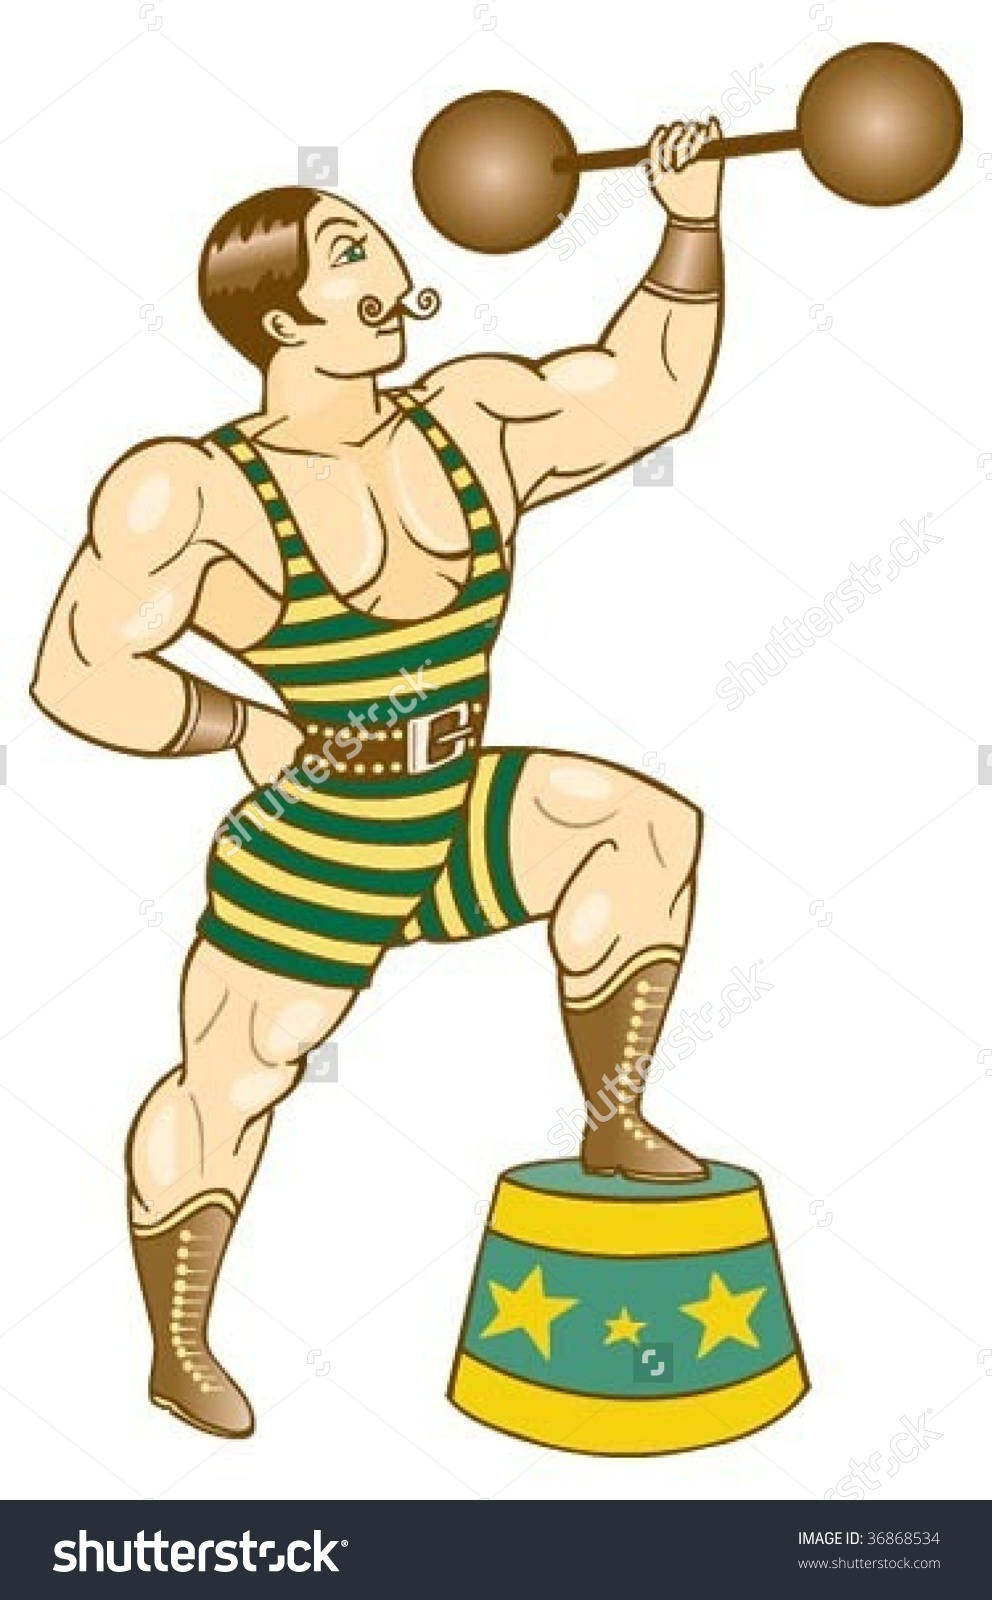 Carneval clipart strong man Man clipart clipart strong Free